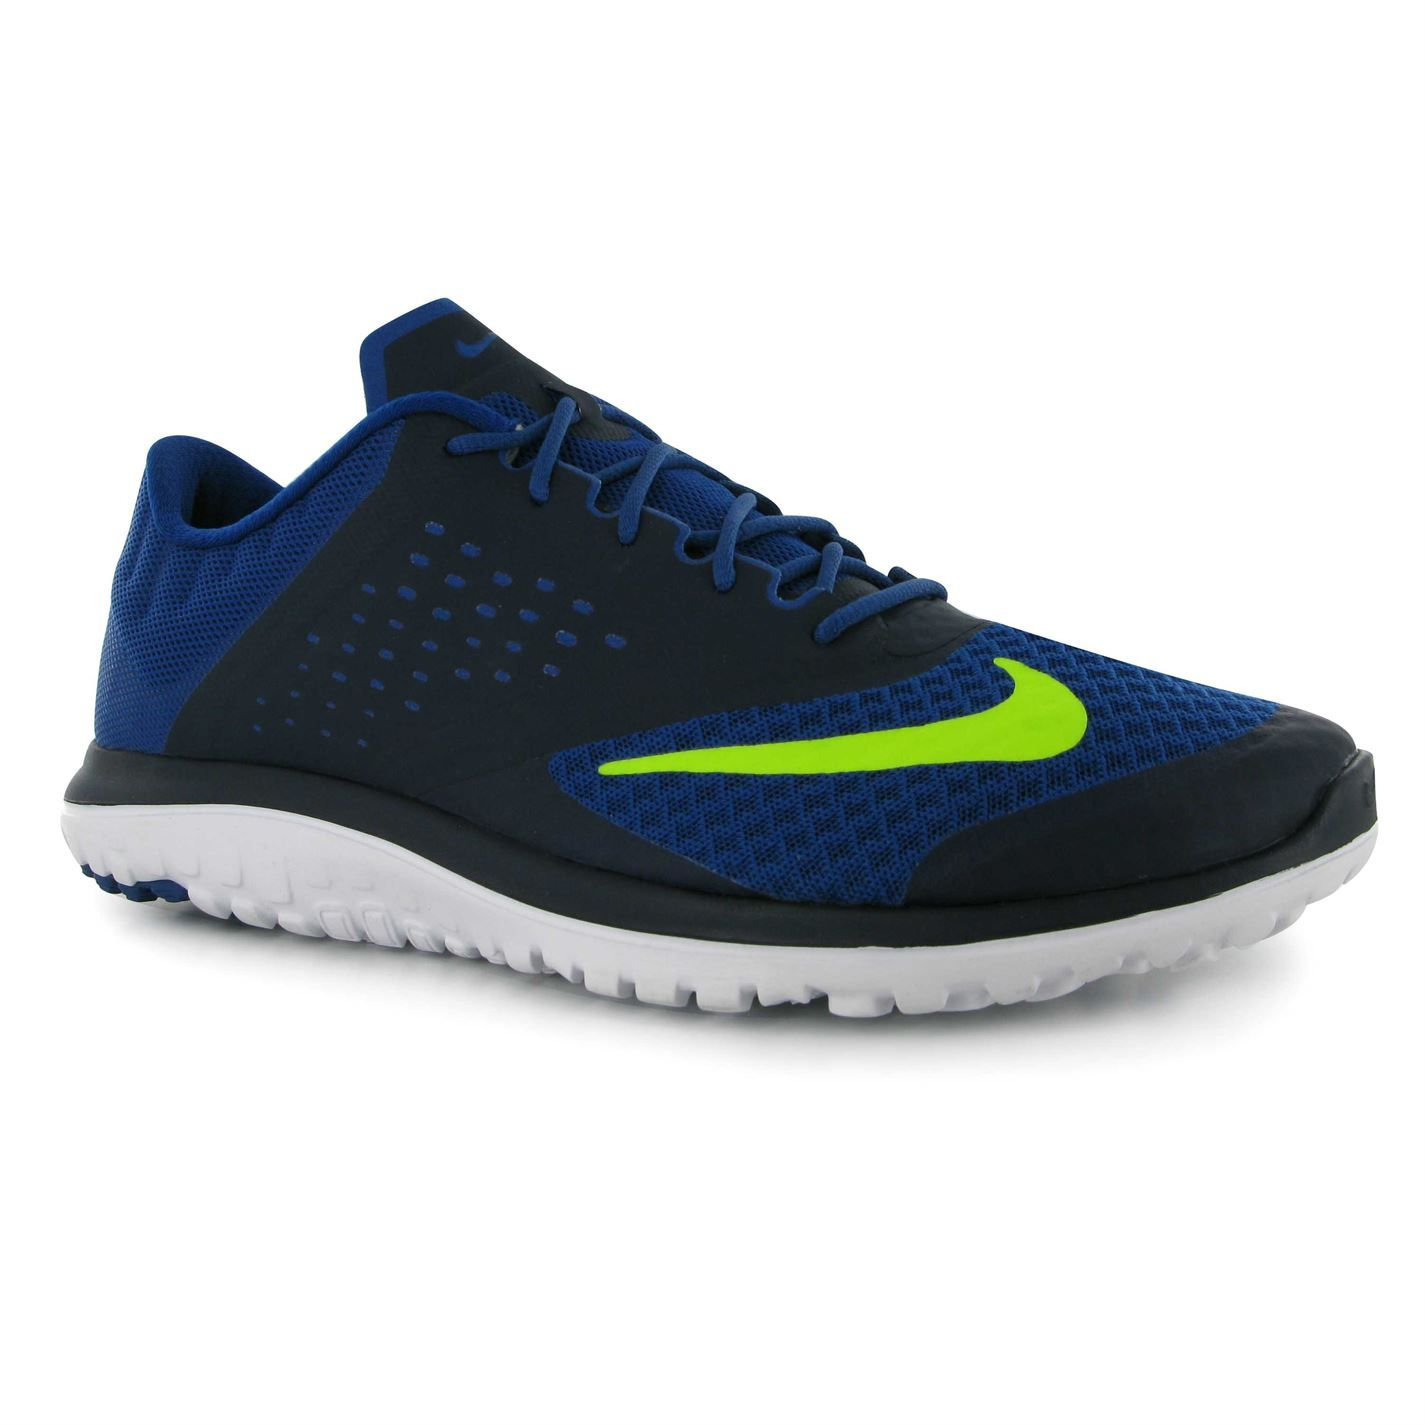 Nike Fit Sole Lite 2 Mens Running Shoes    Now £51.99  5102759d871